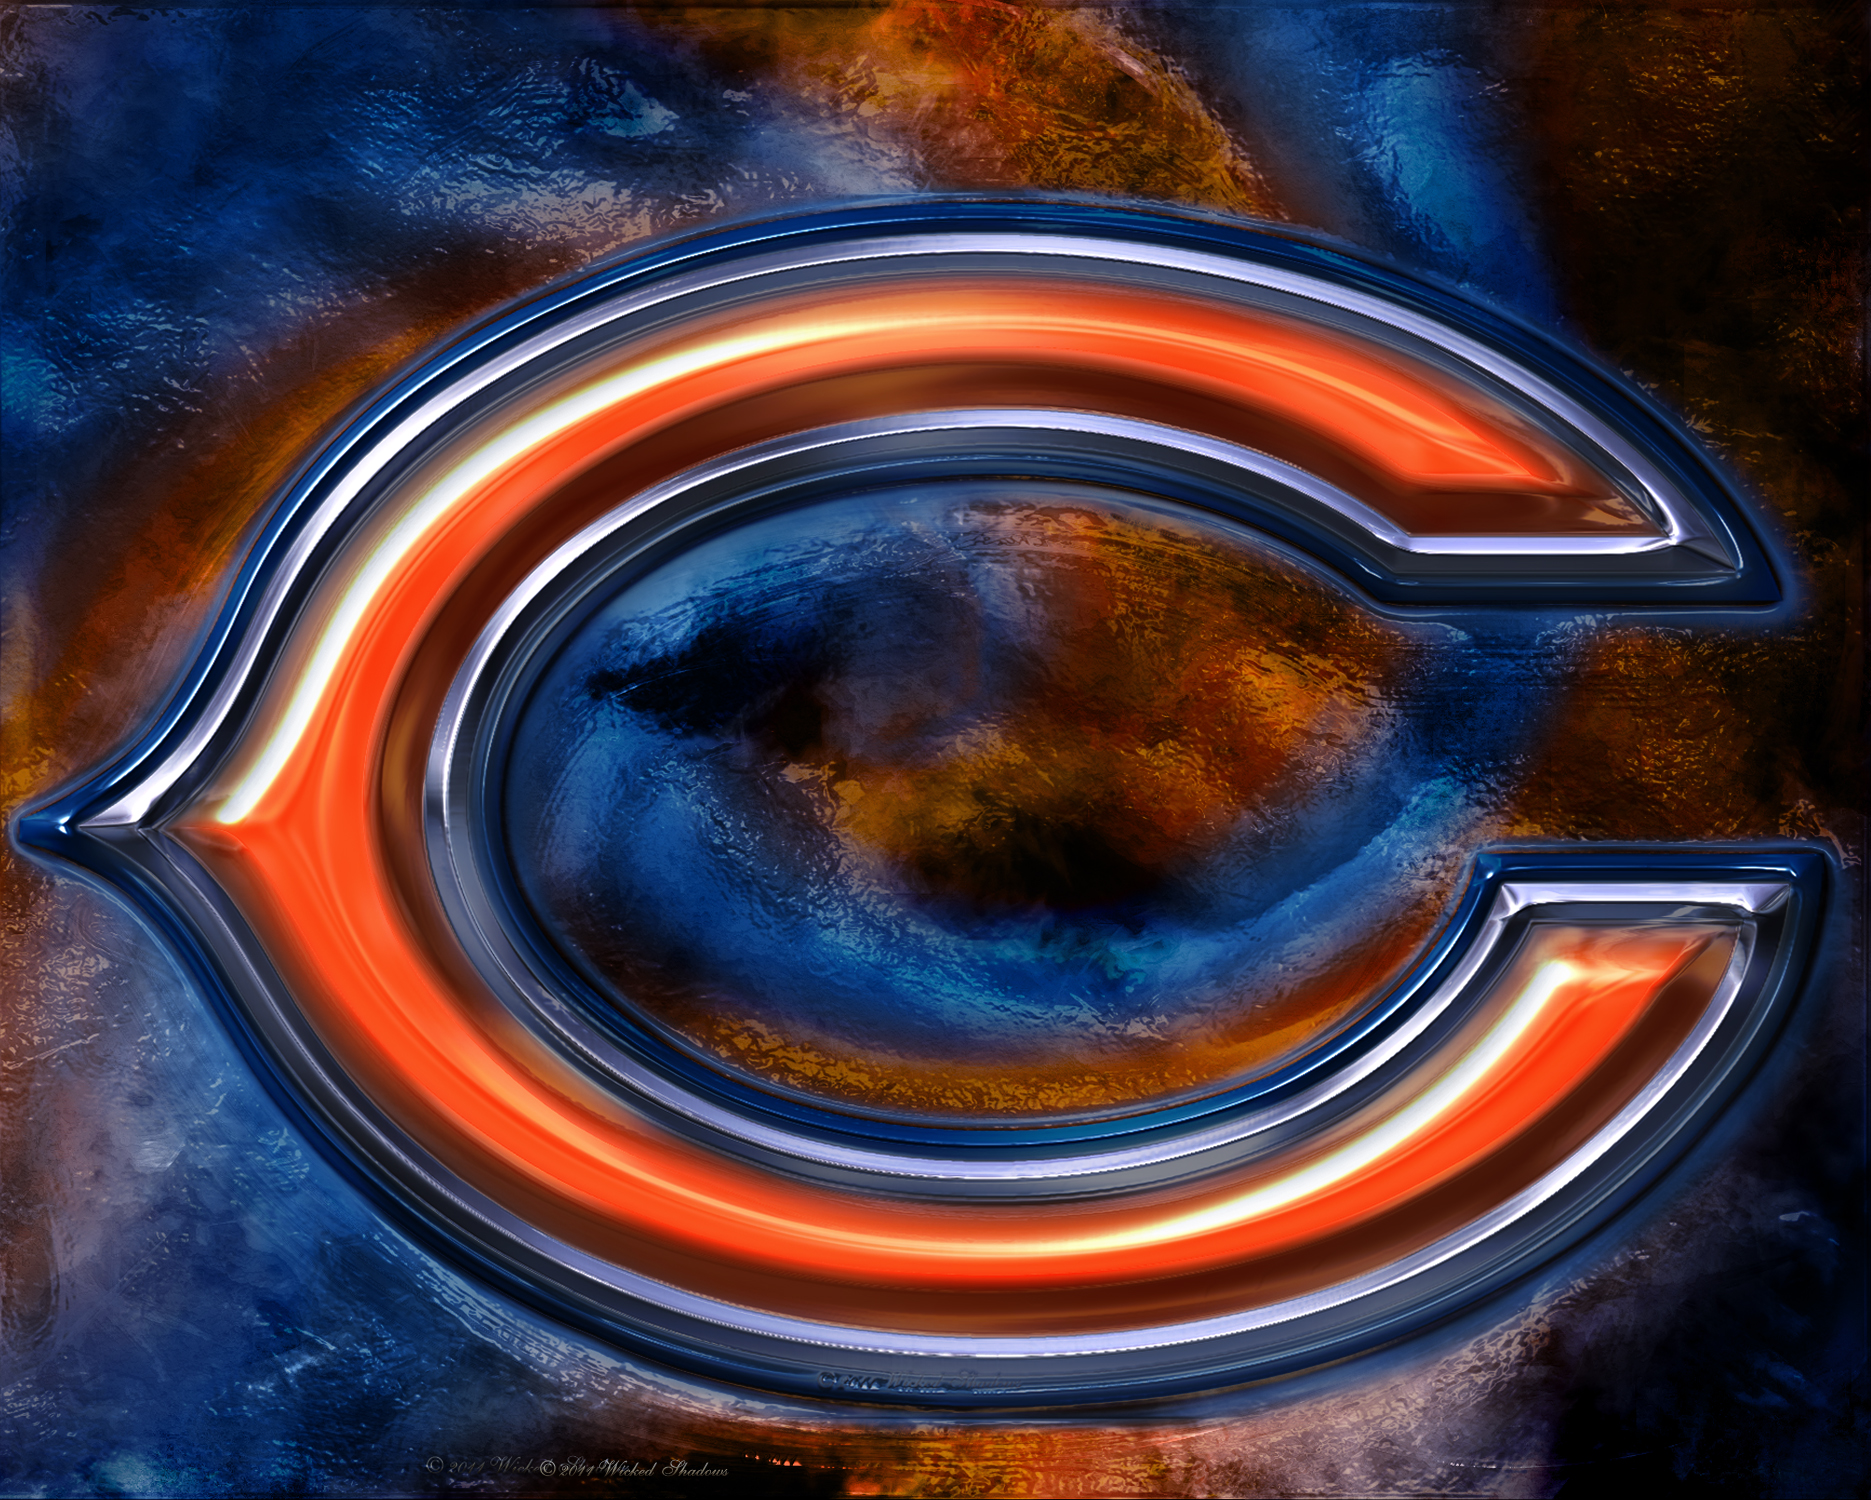 Chicago Bears 3D Logo Wallpaper   Hot NFL Wallpaper Site 1871x1500